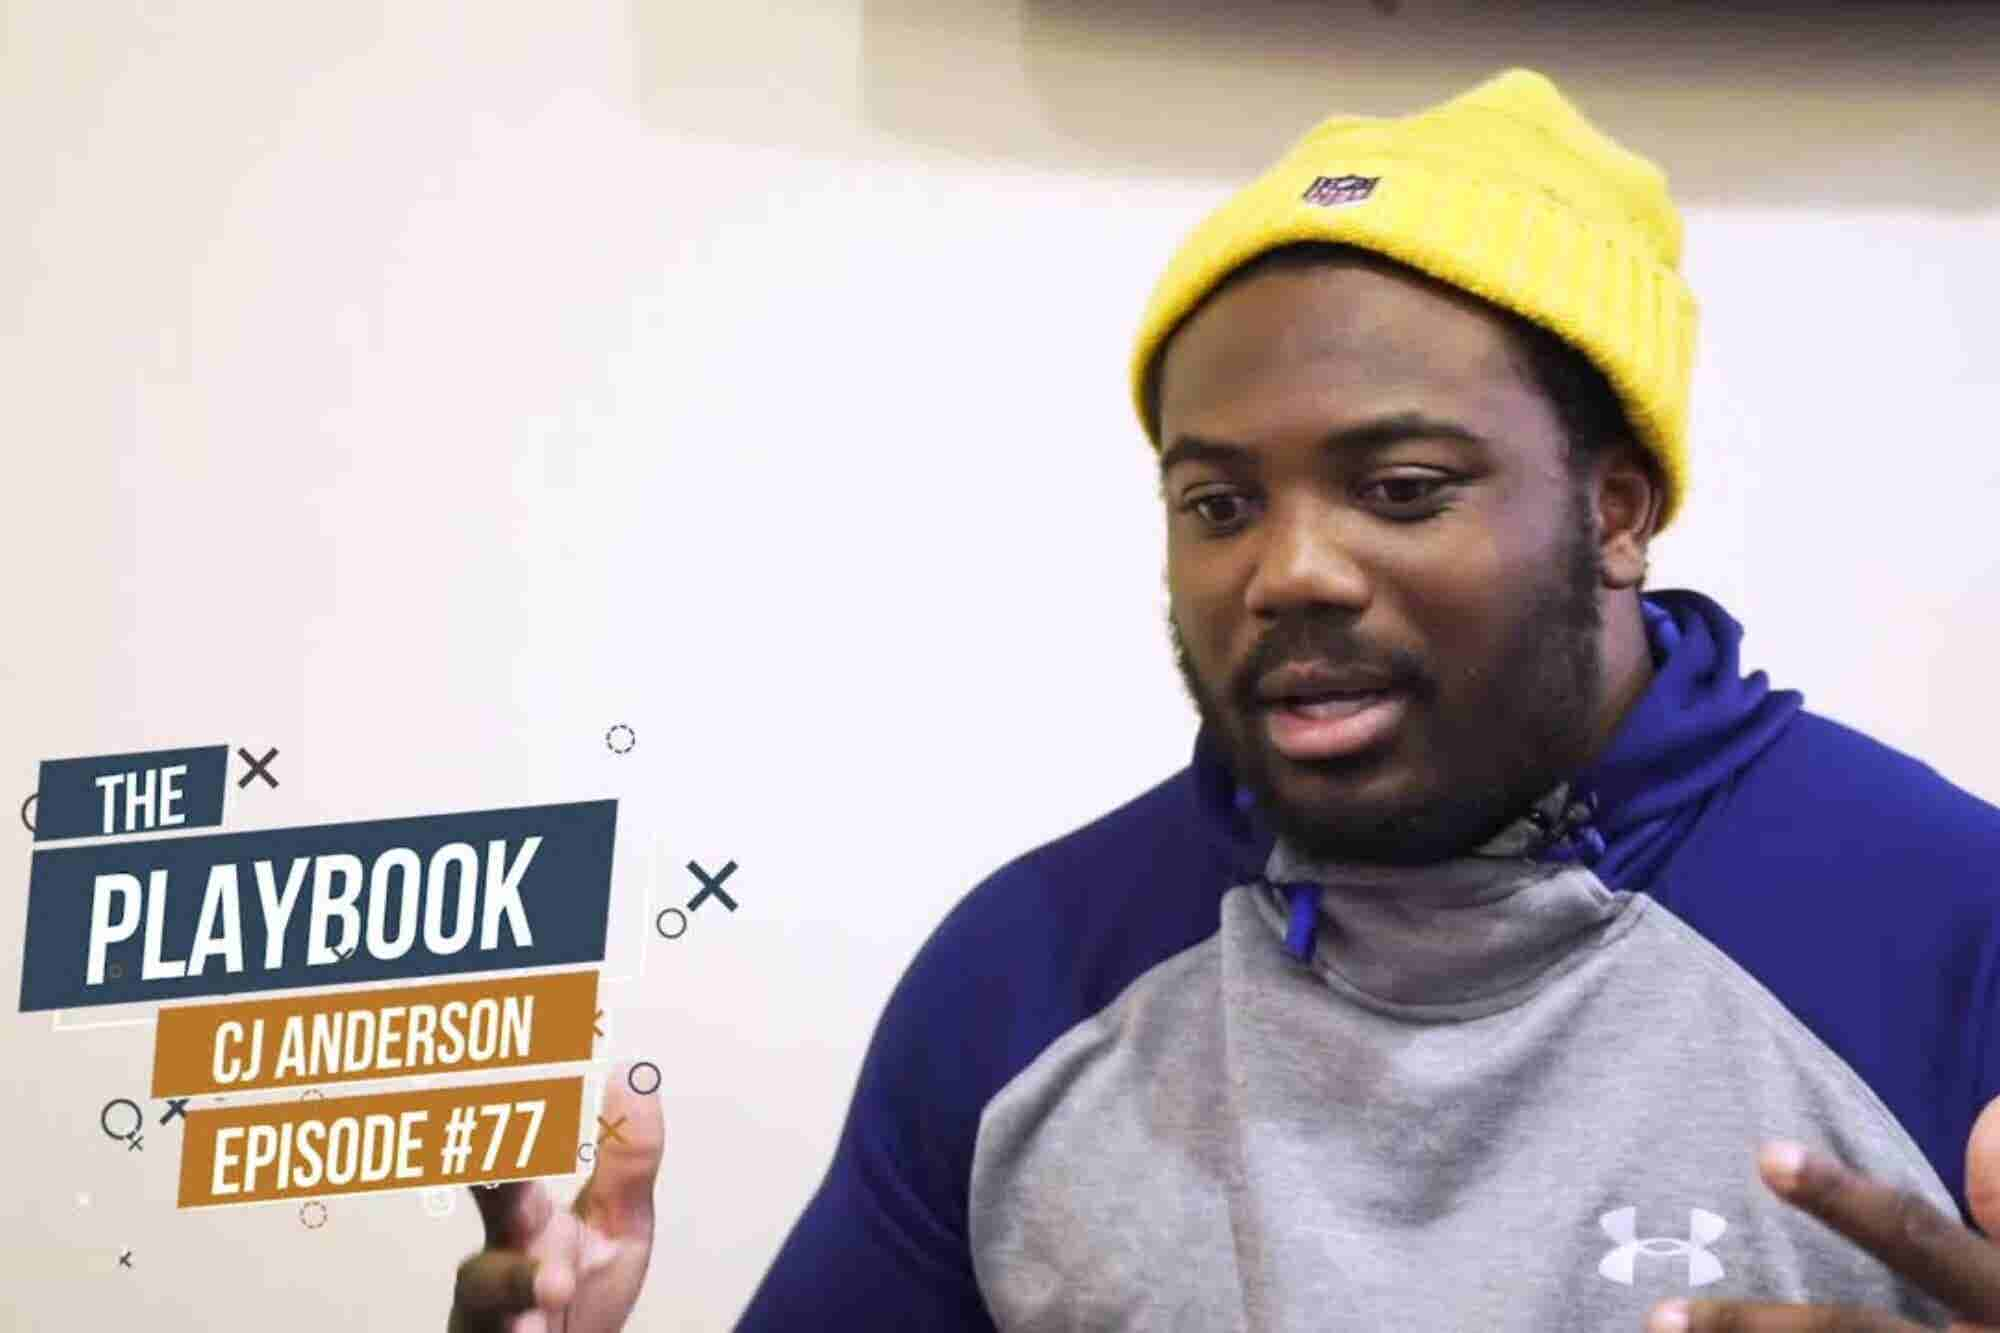 C.J. Anderson: Comeback Kid Looking for Another Super Bowl Win